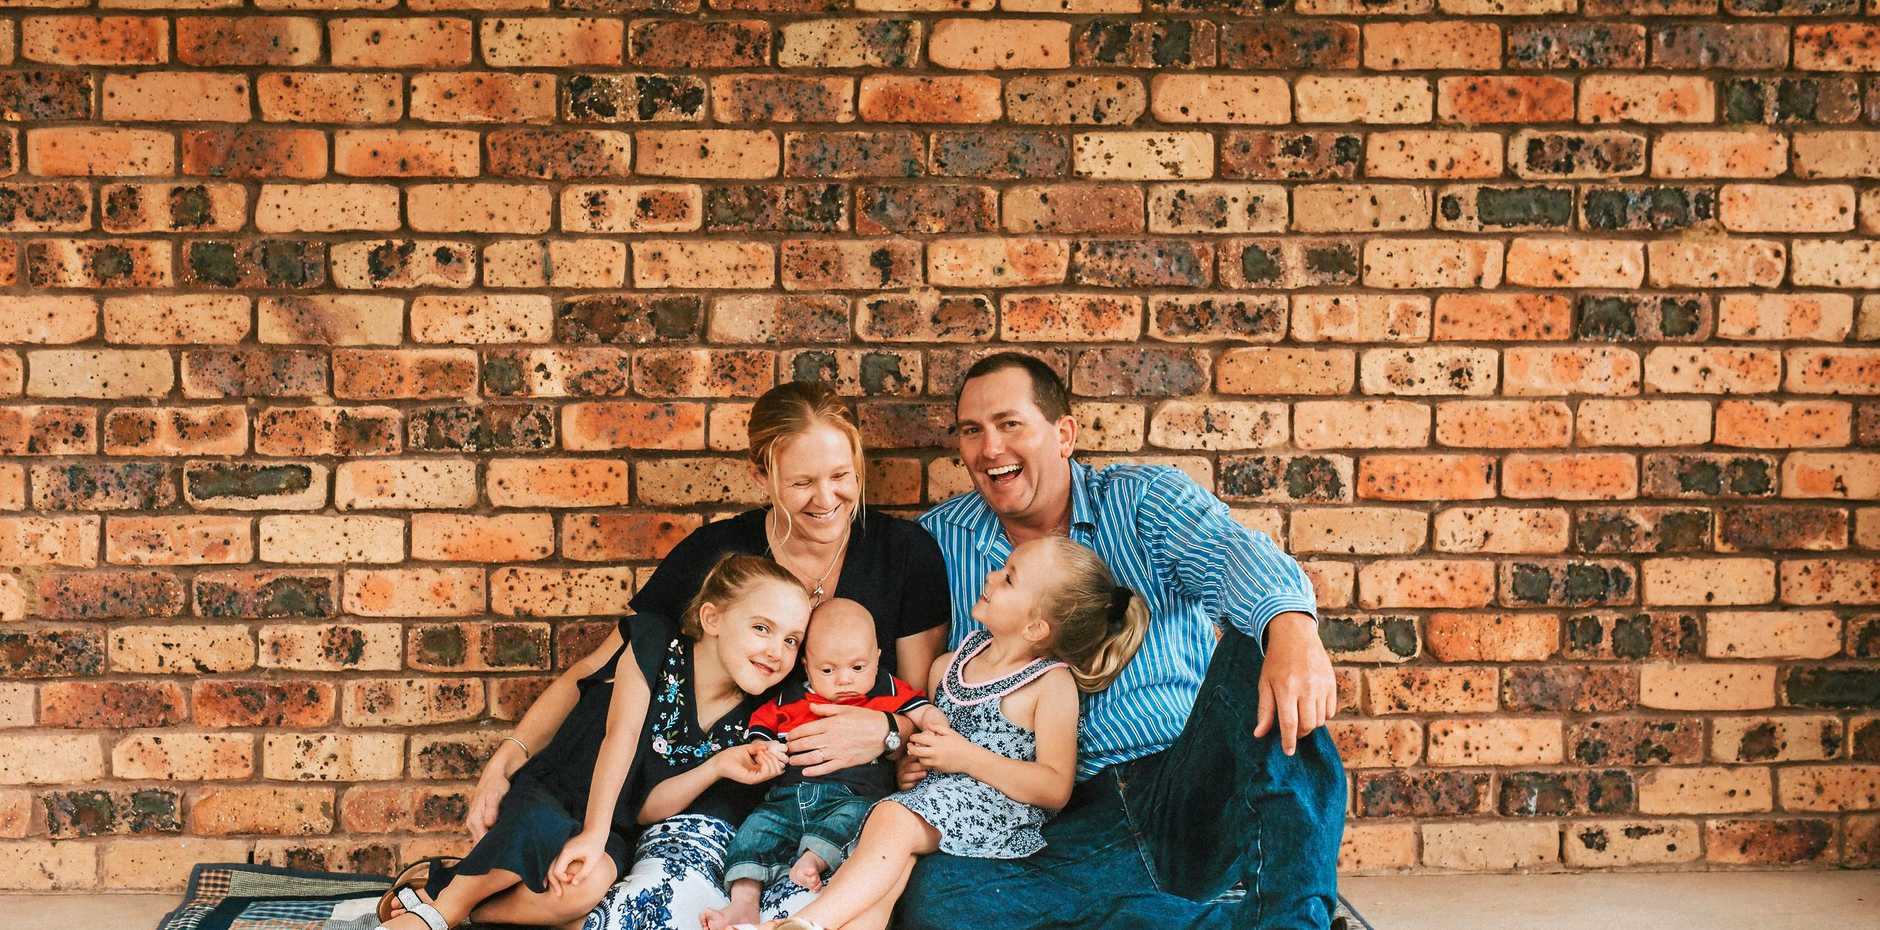 FAMILY LOVE: Ten-month-old Tommy Johnston has a terminal disease called Niemann-Pick Type C and his family wants to raise awareness. He is pictured with parents Pip and Paul Johnston and sisters Jess and Annabel in Tenterfield.